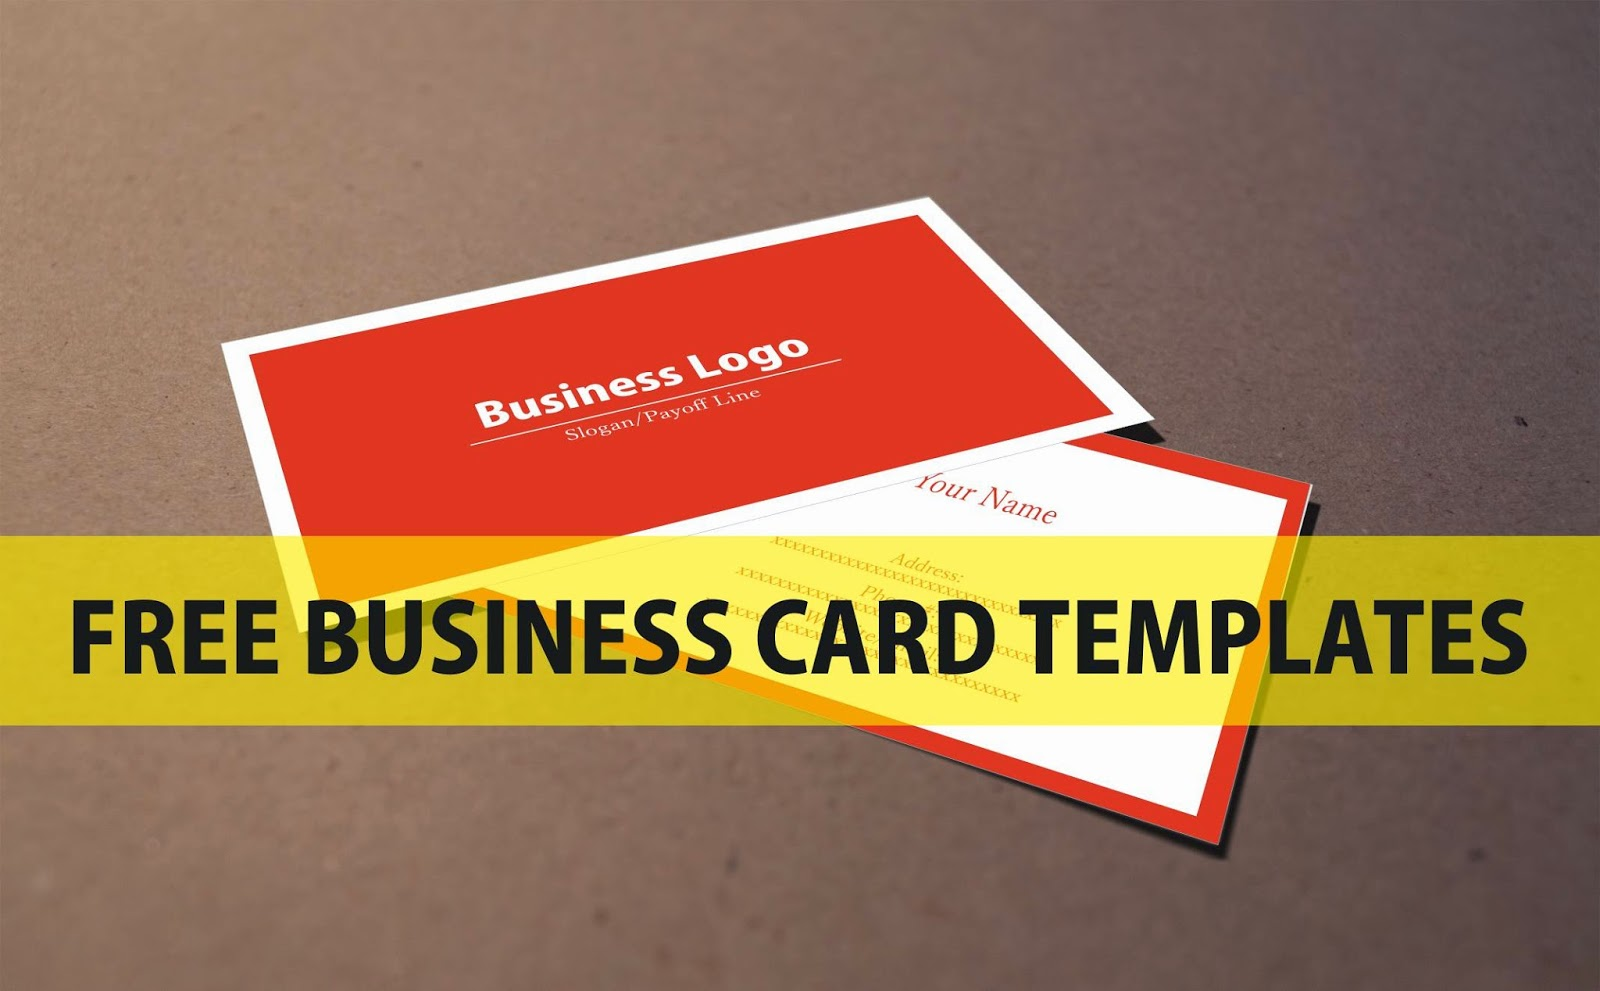 Free business card template download coreldraw file a graphic free business card template download coreldraw file accmission Images